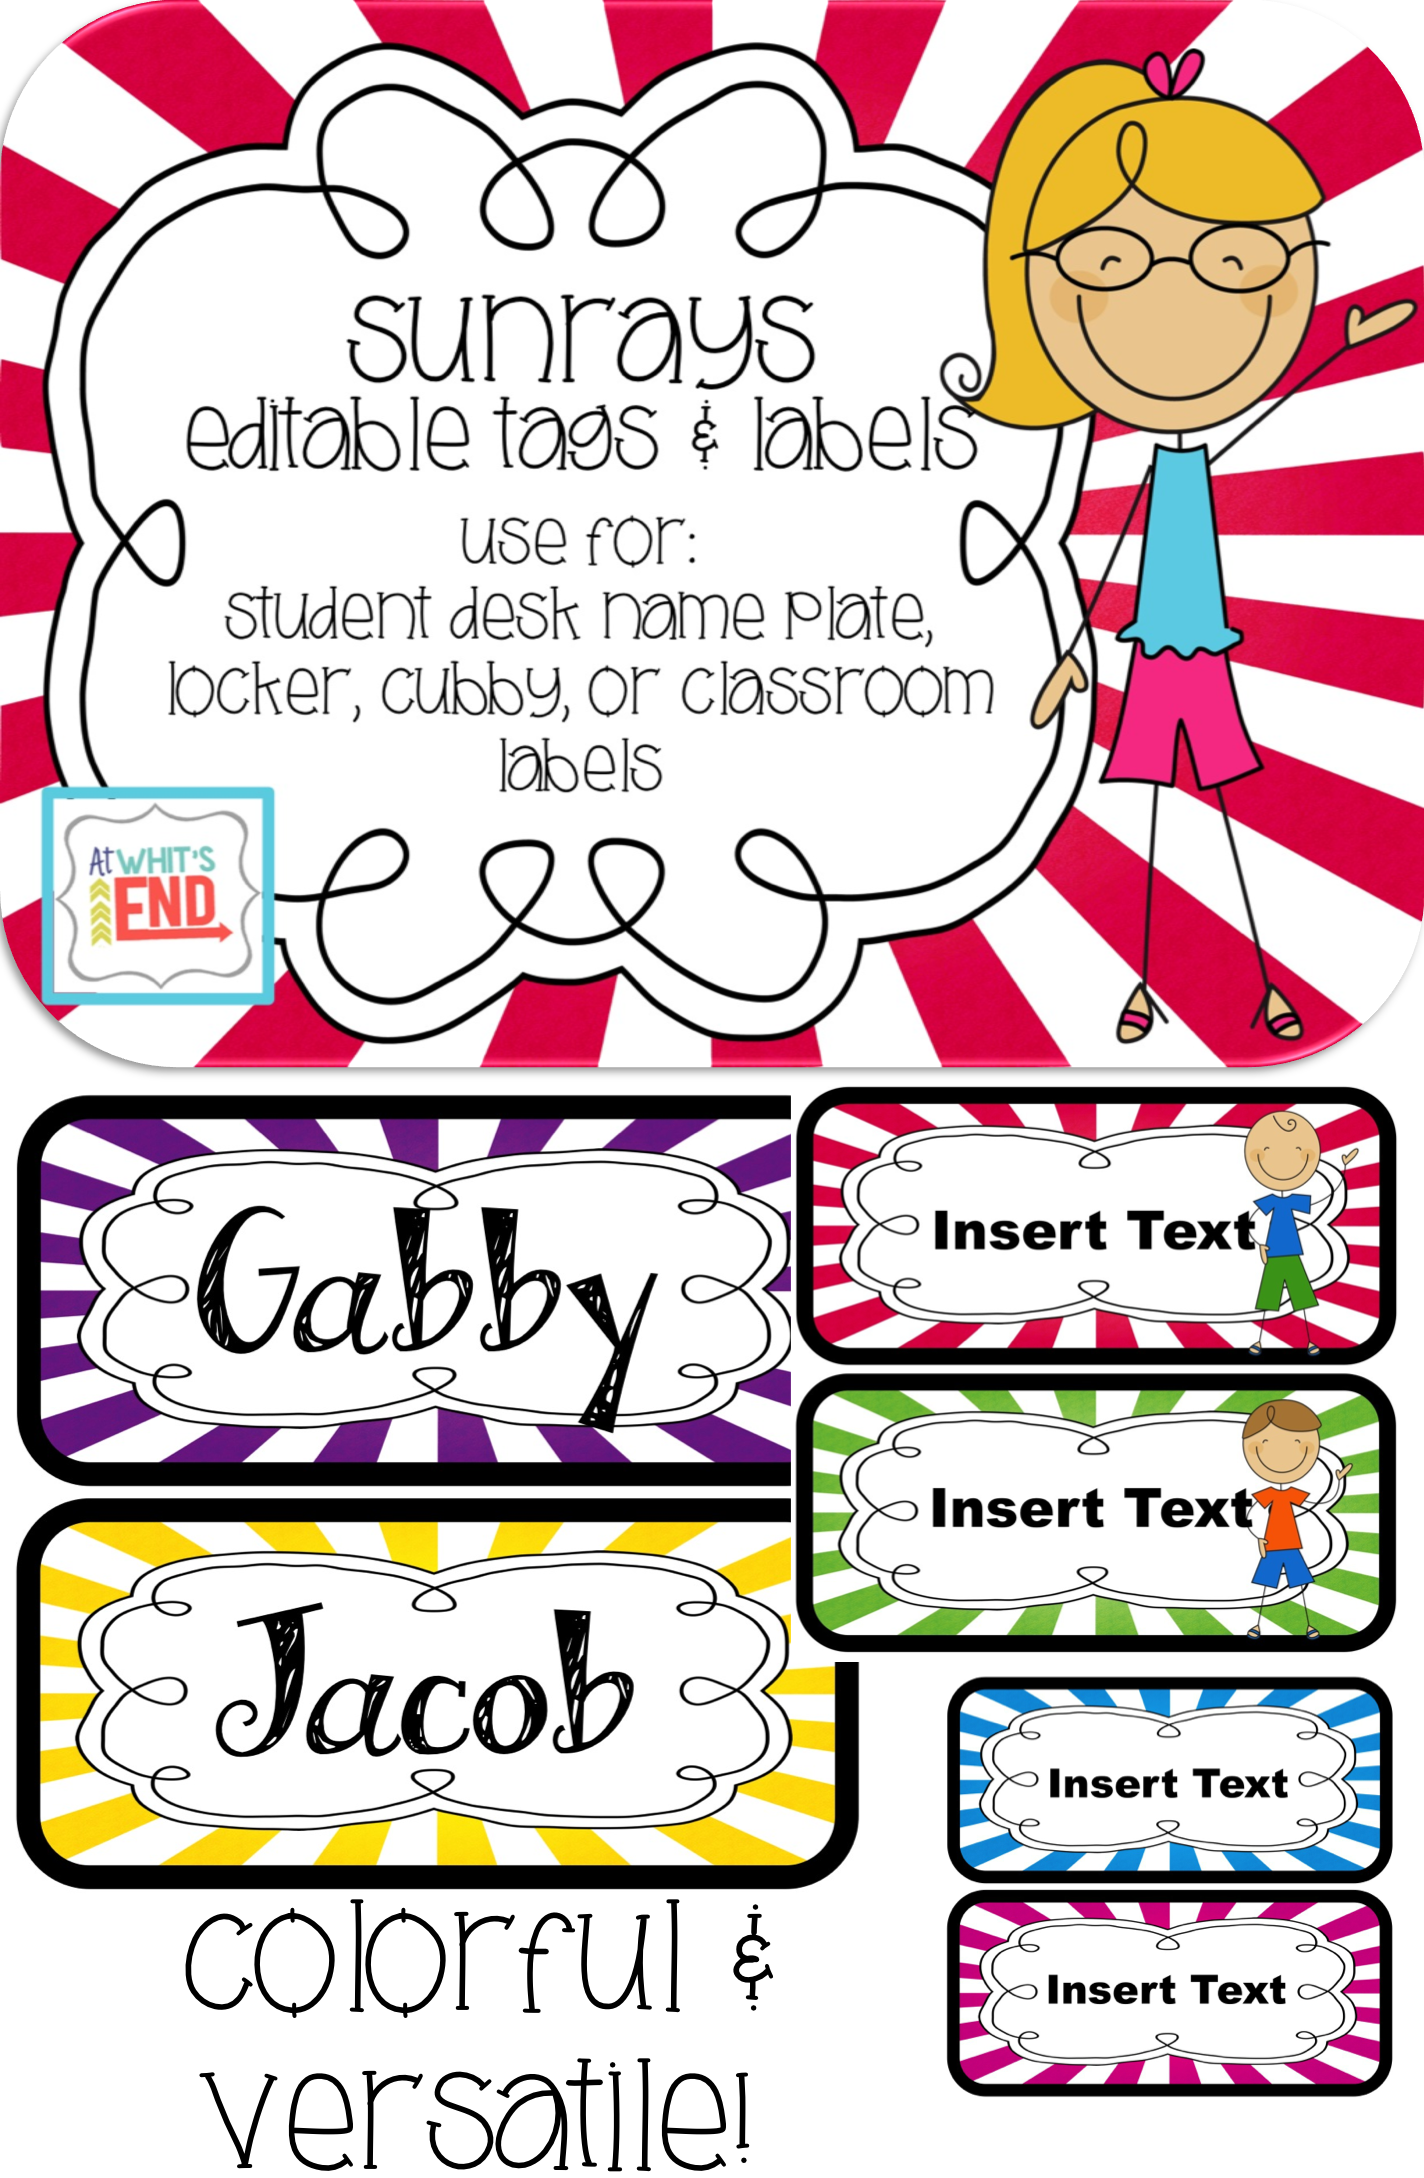 Sunrays Editable Tags Amp Labels Classroom Printables Back To School 1st Grade Fun